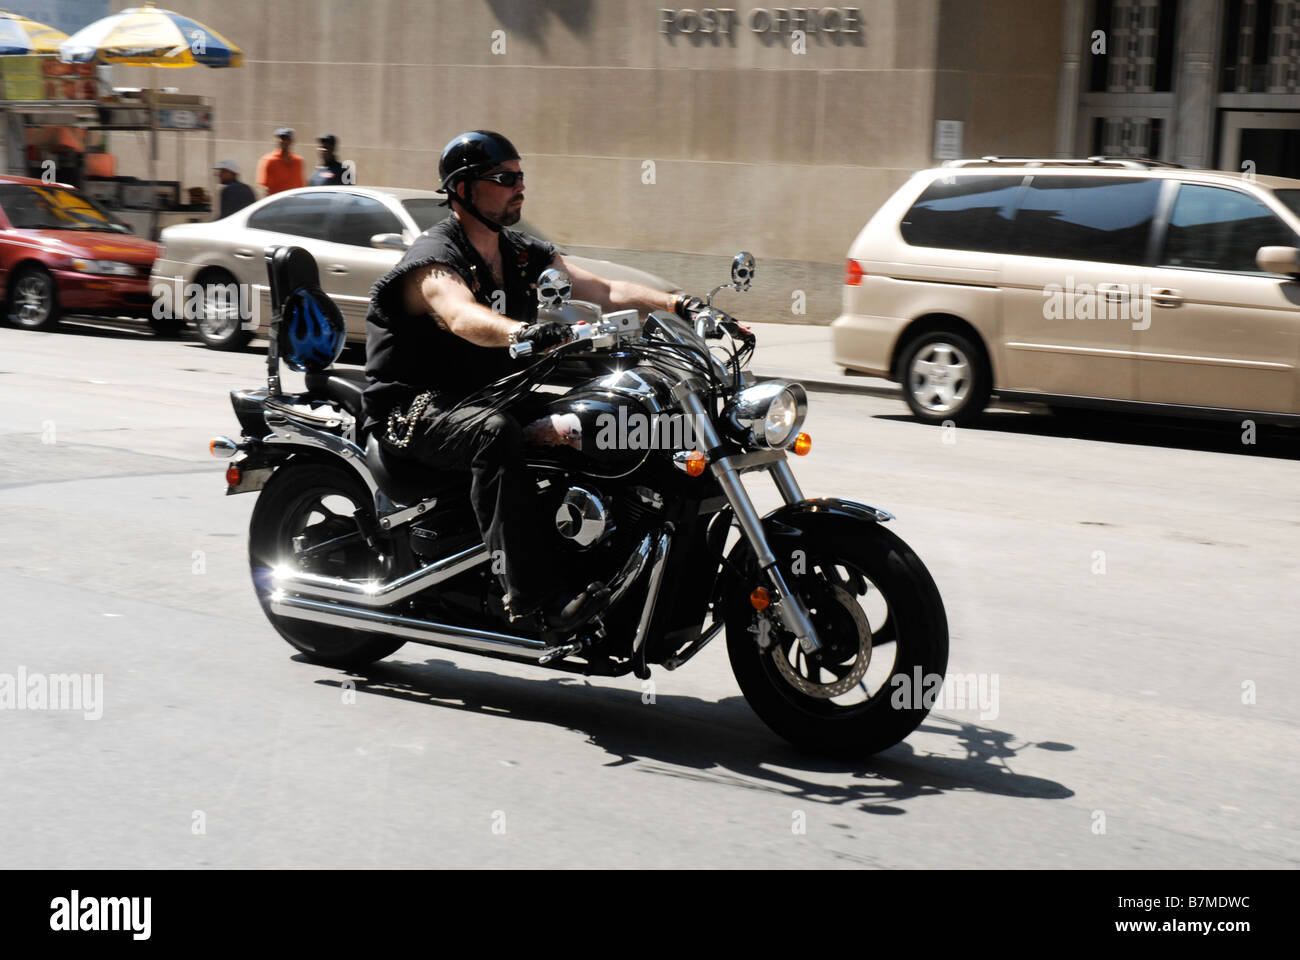 Biker in New York city - Stock Image